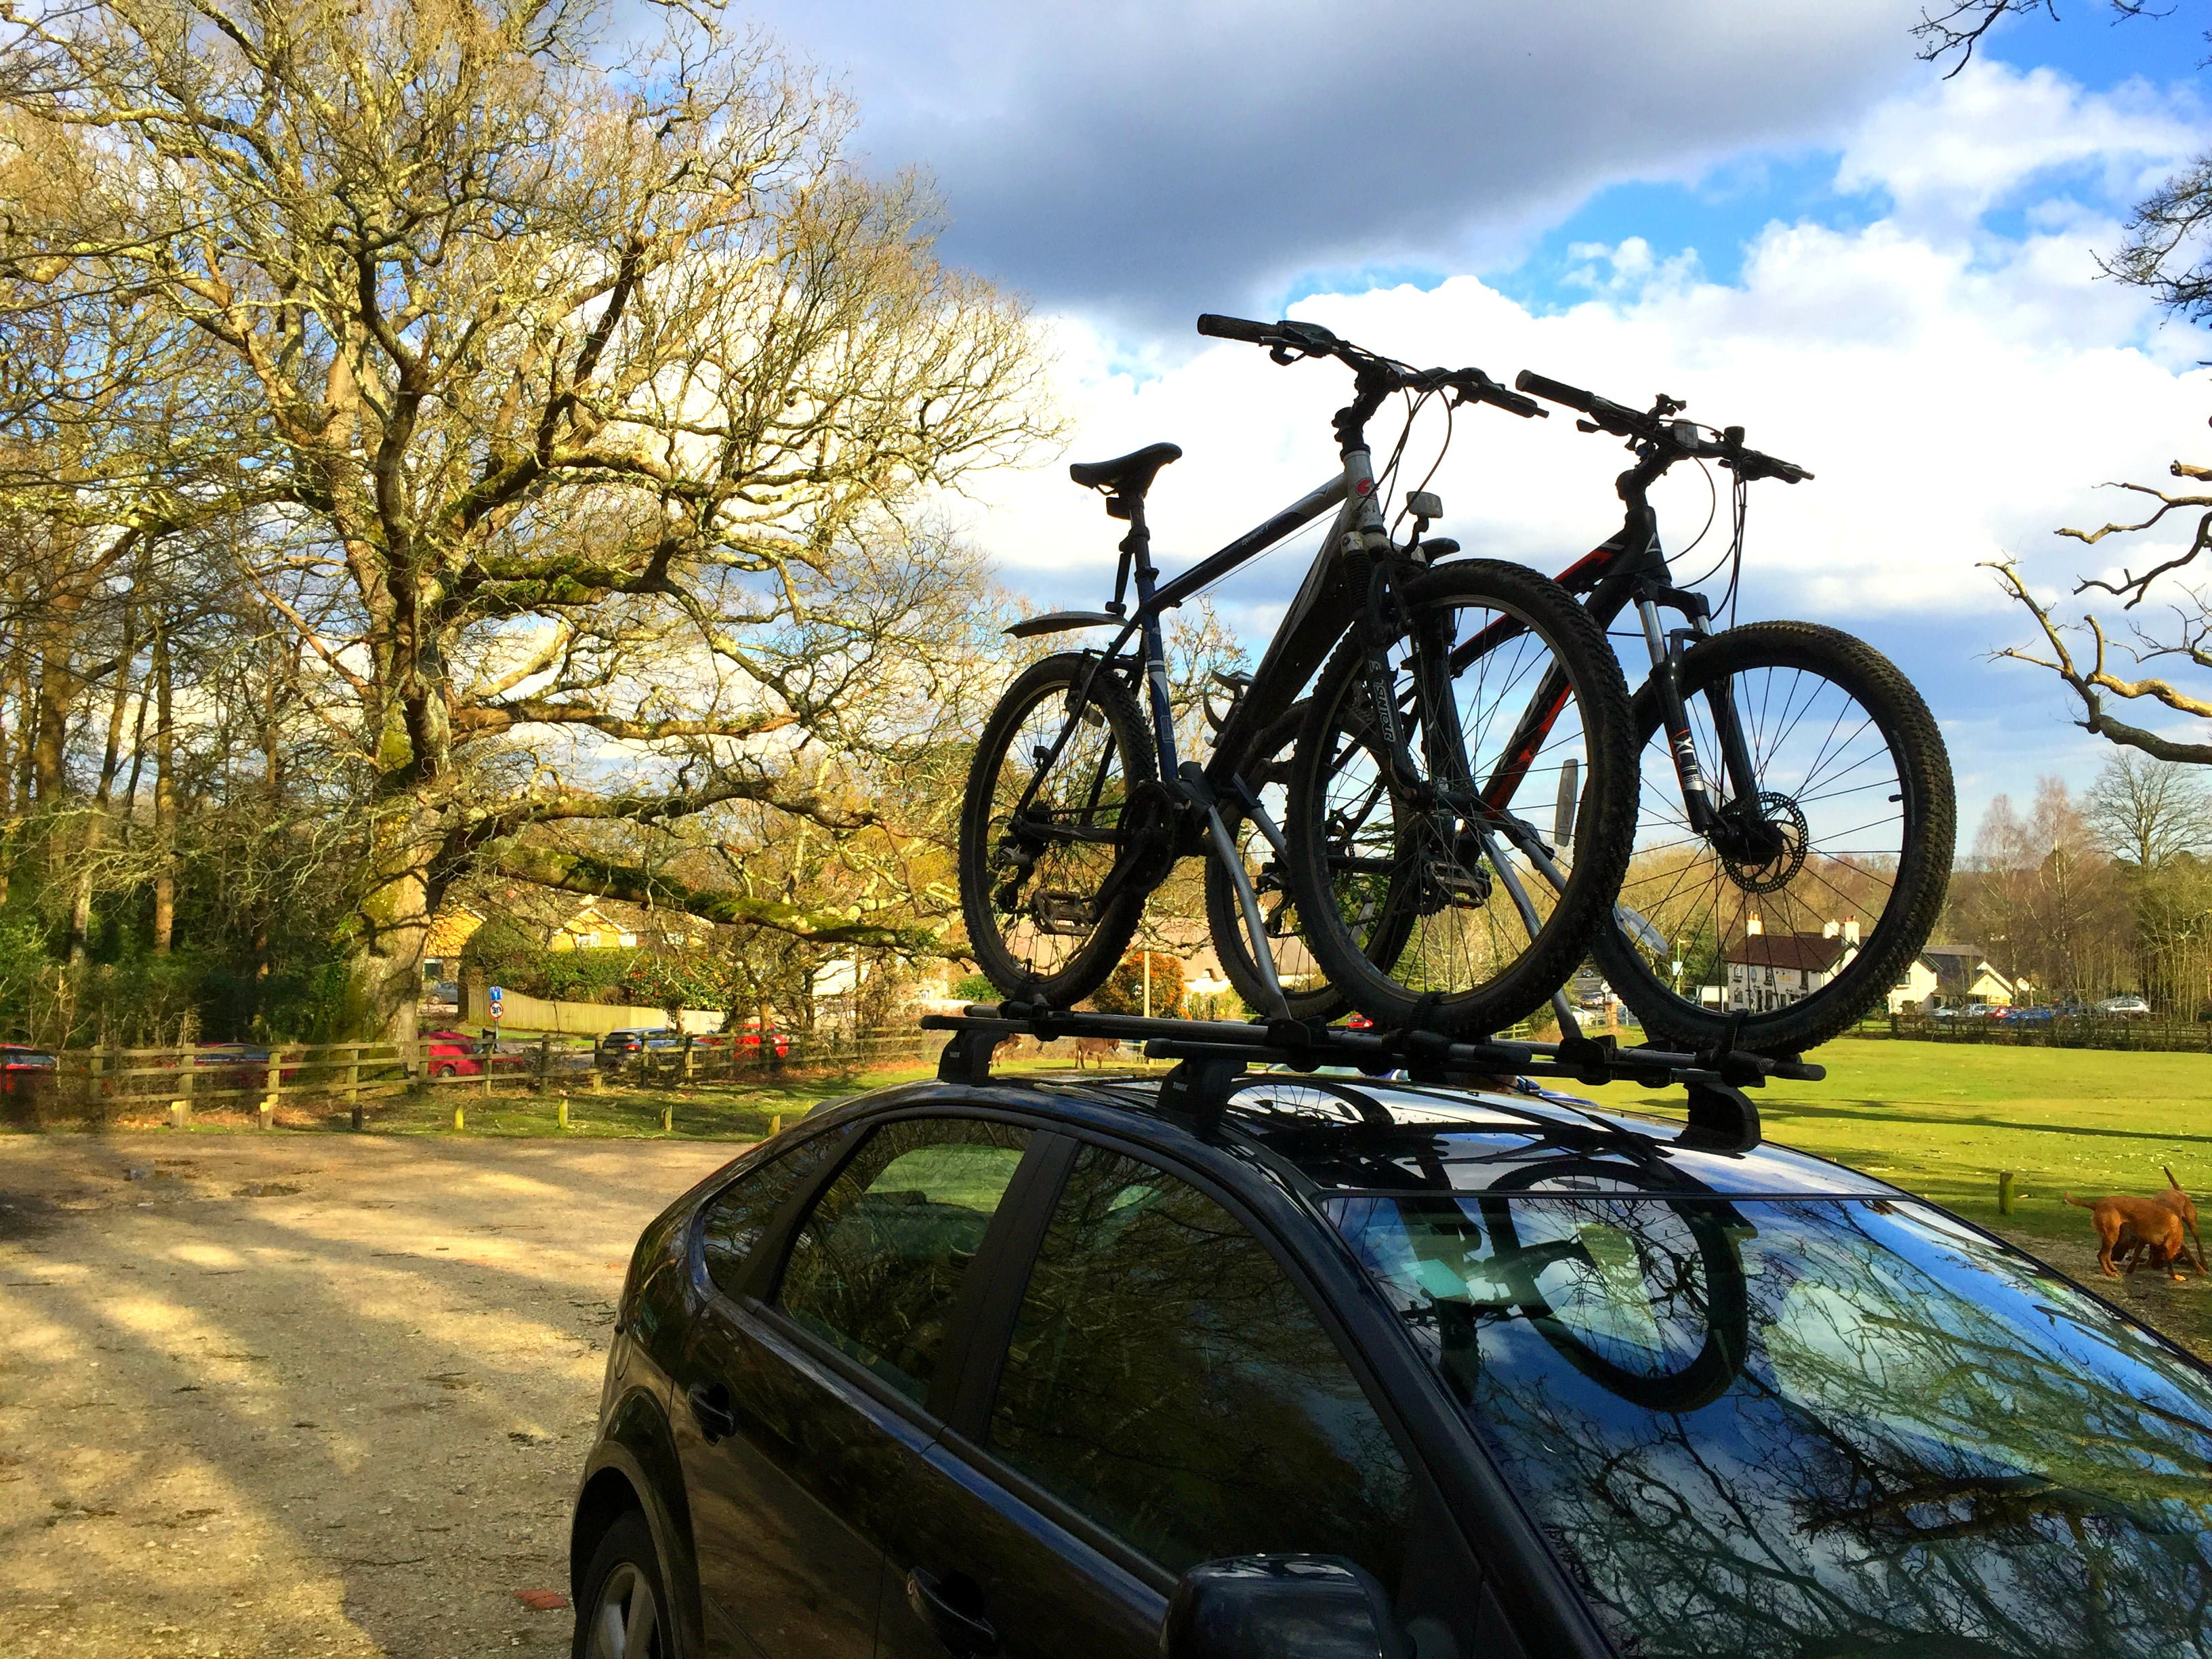 Microadventure: Cycling in The New Forest National Park